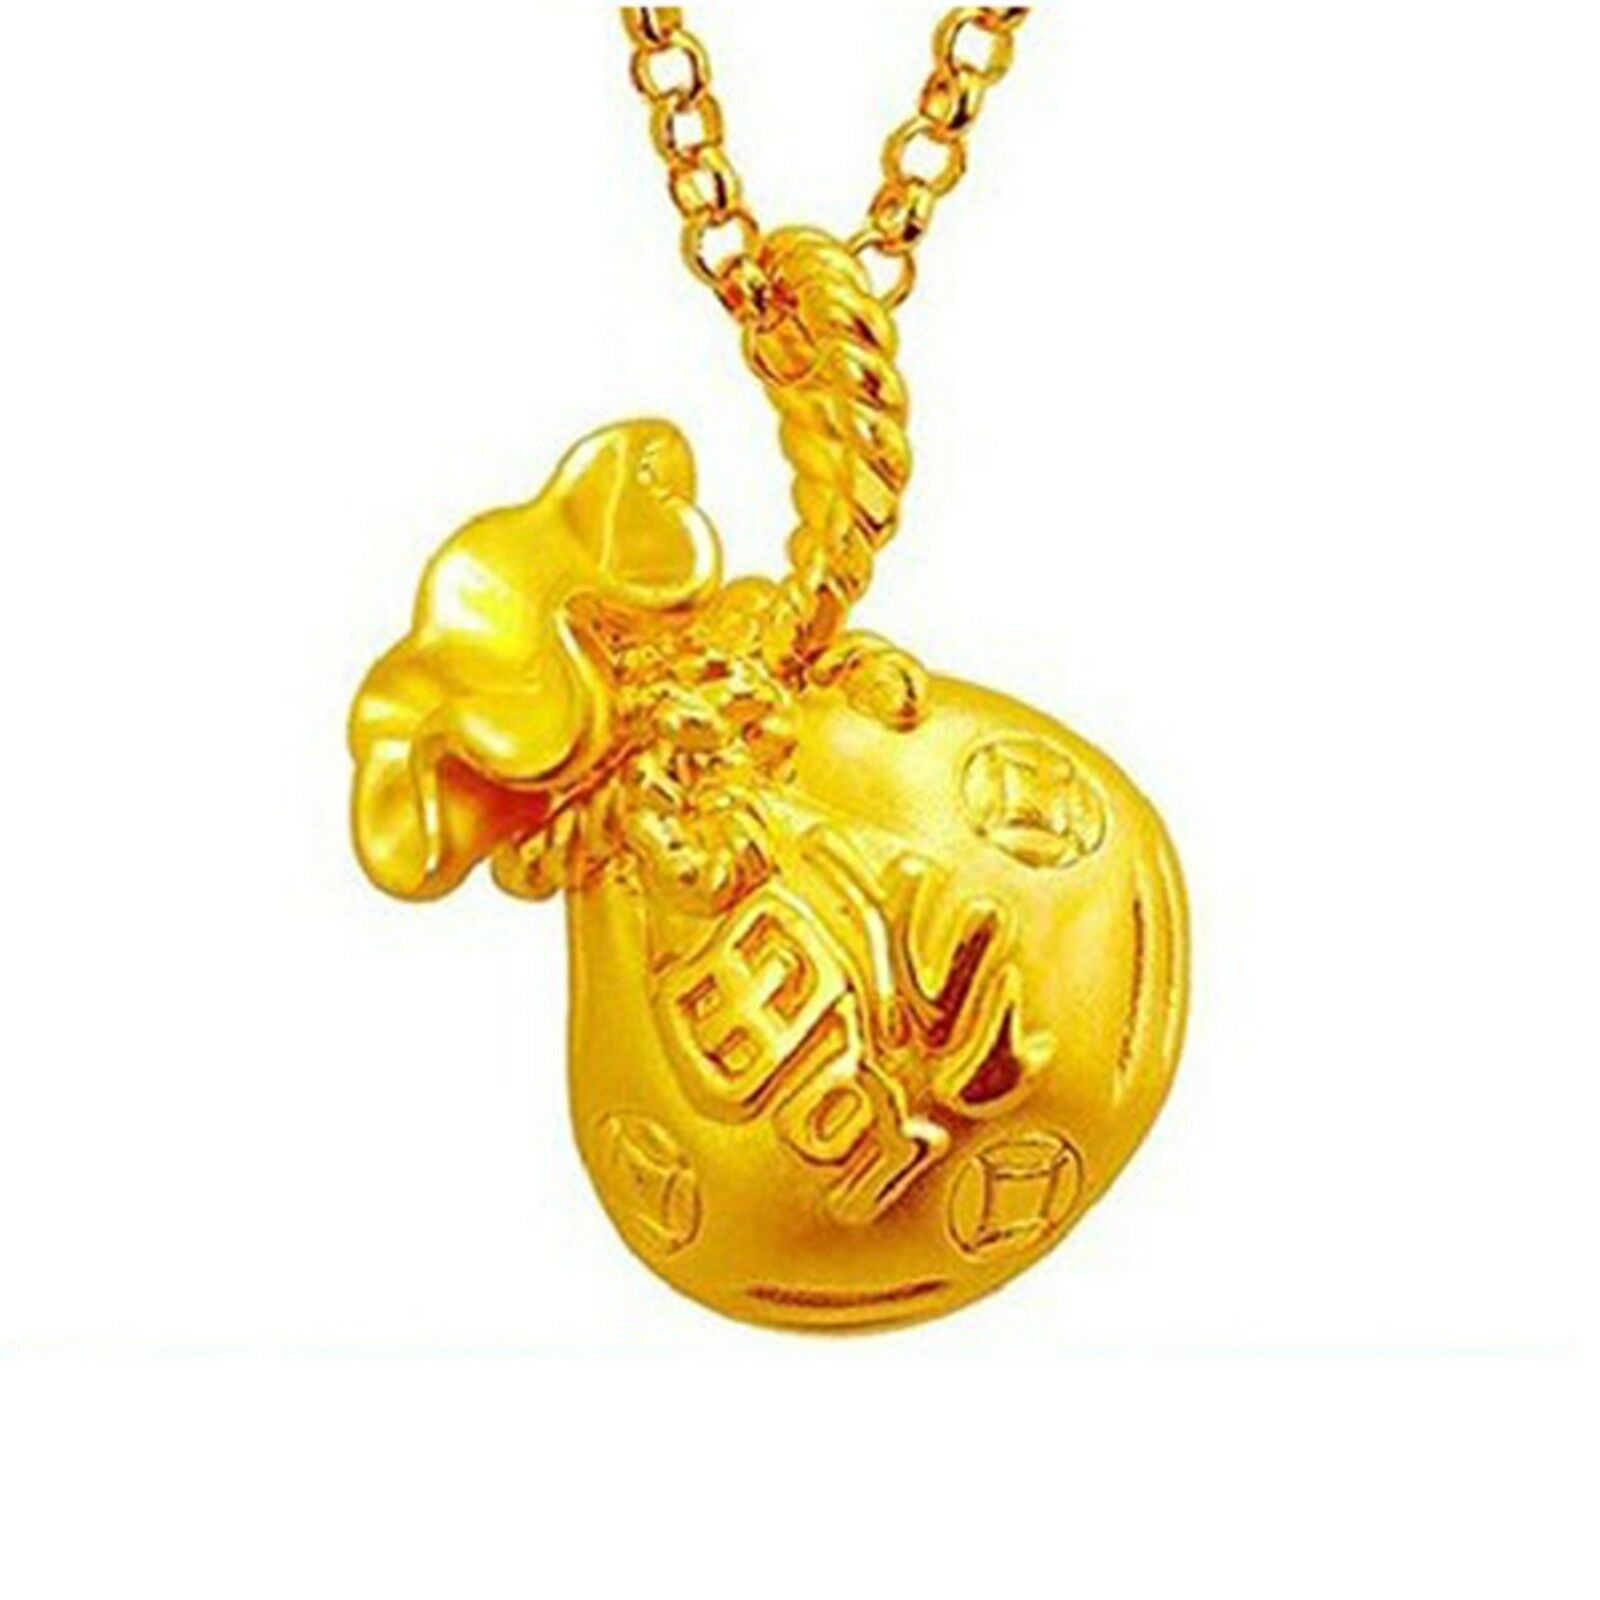 New Arrival Pure 999 24K Yellow gold Women 3D Bag Pendant 0.9-1.1g